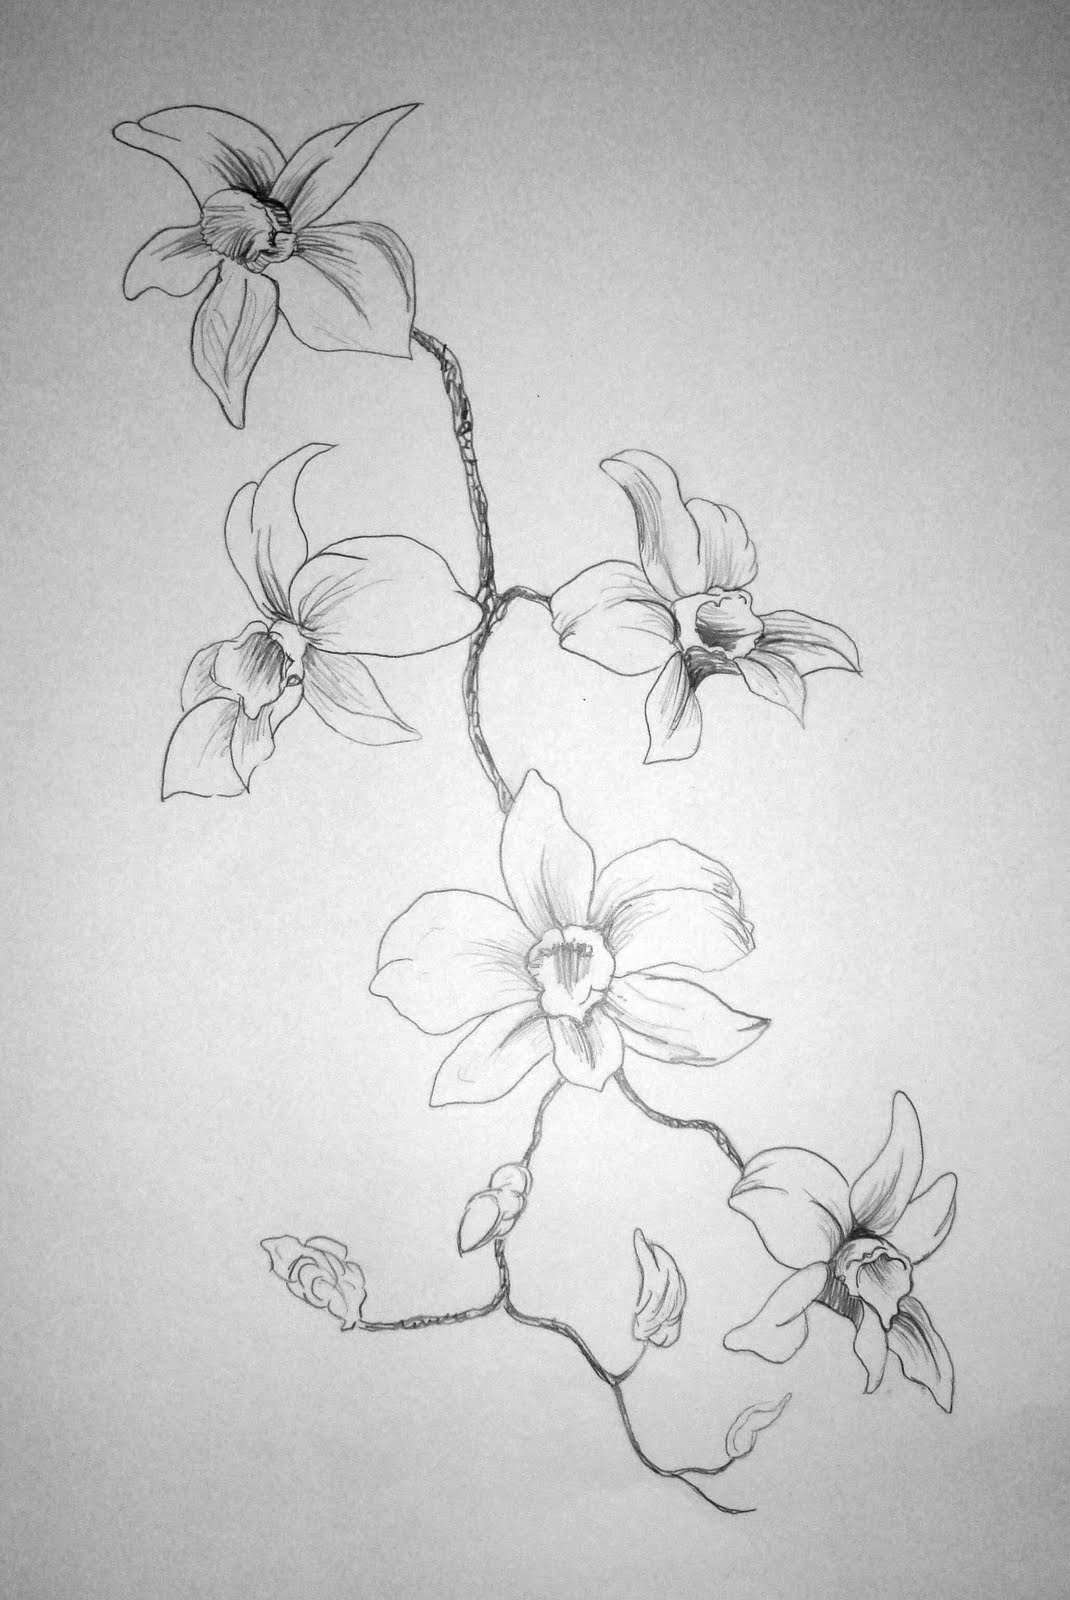 Easy Drawings Of Flowers In Pencil Hidden Yesterda...